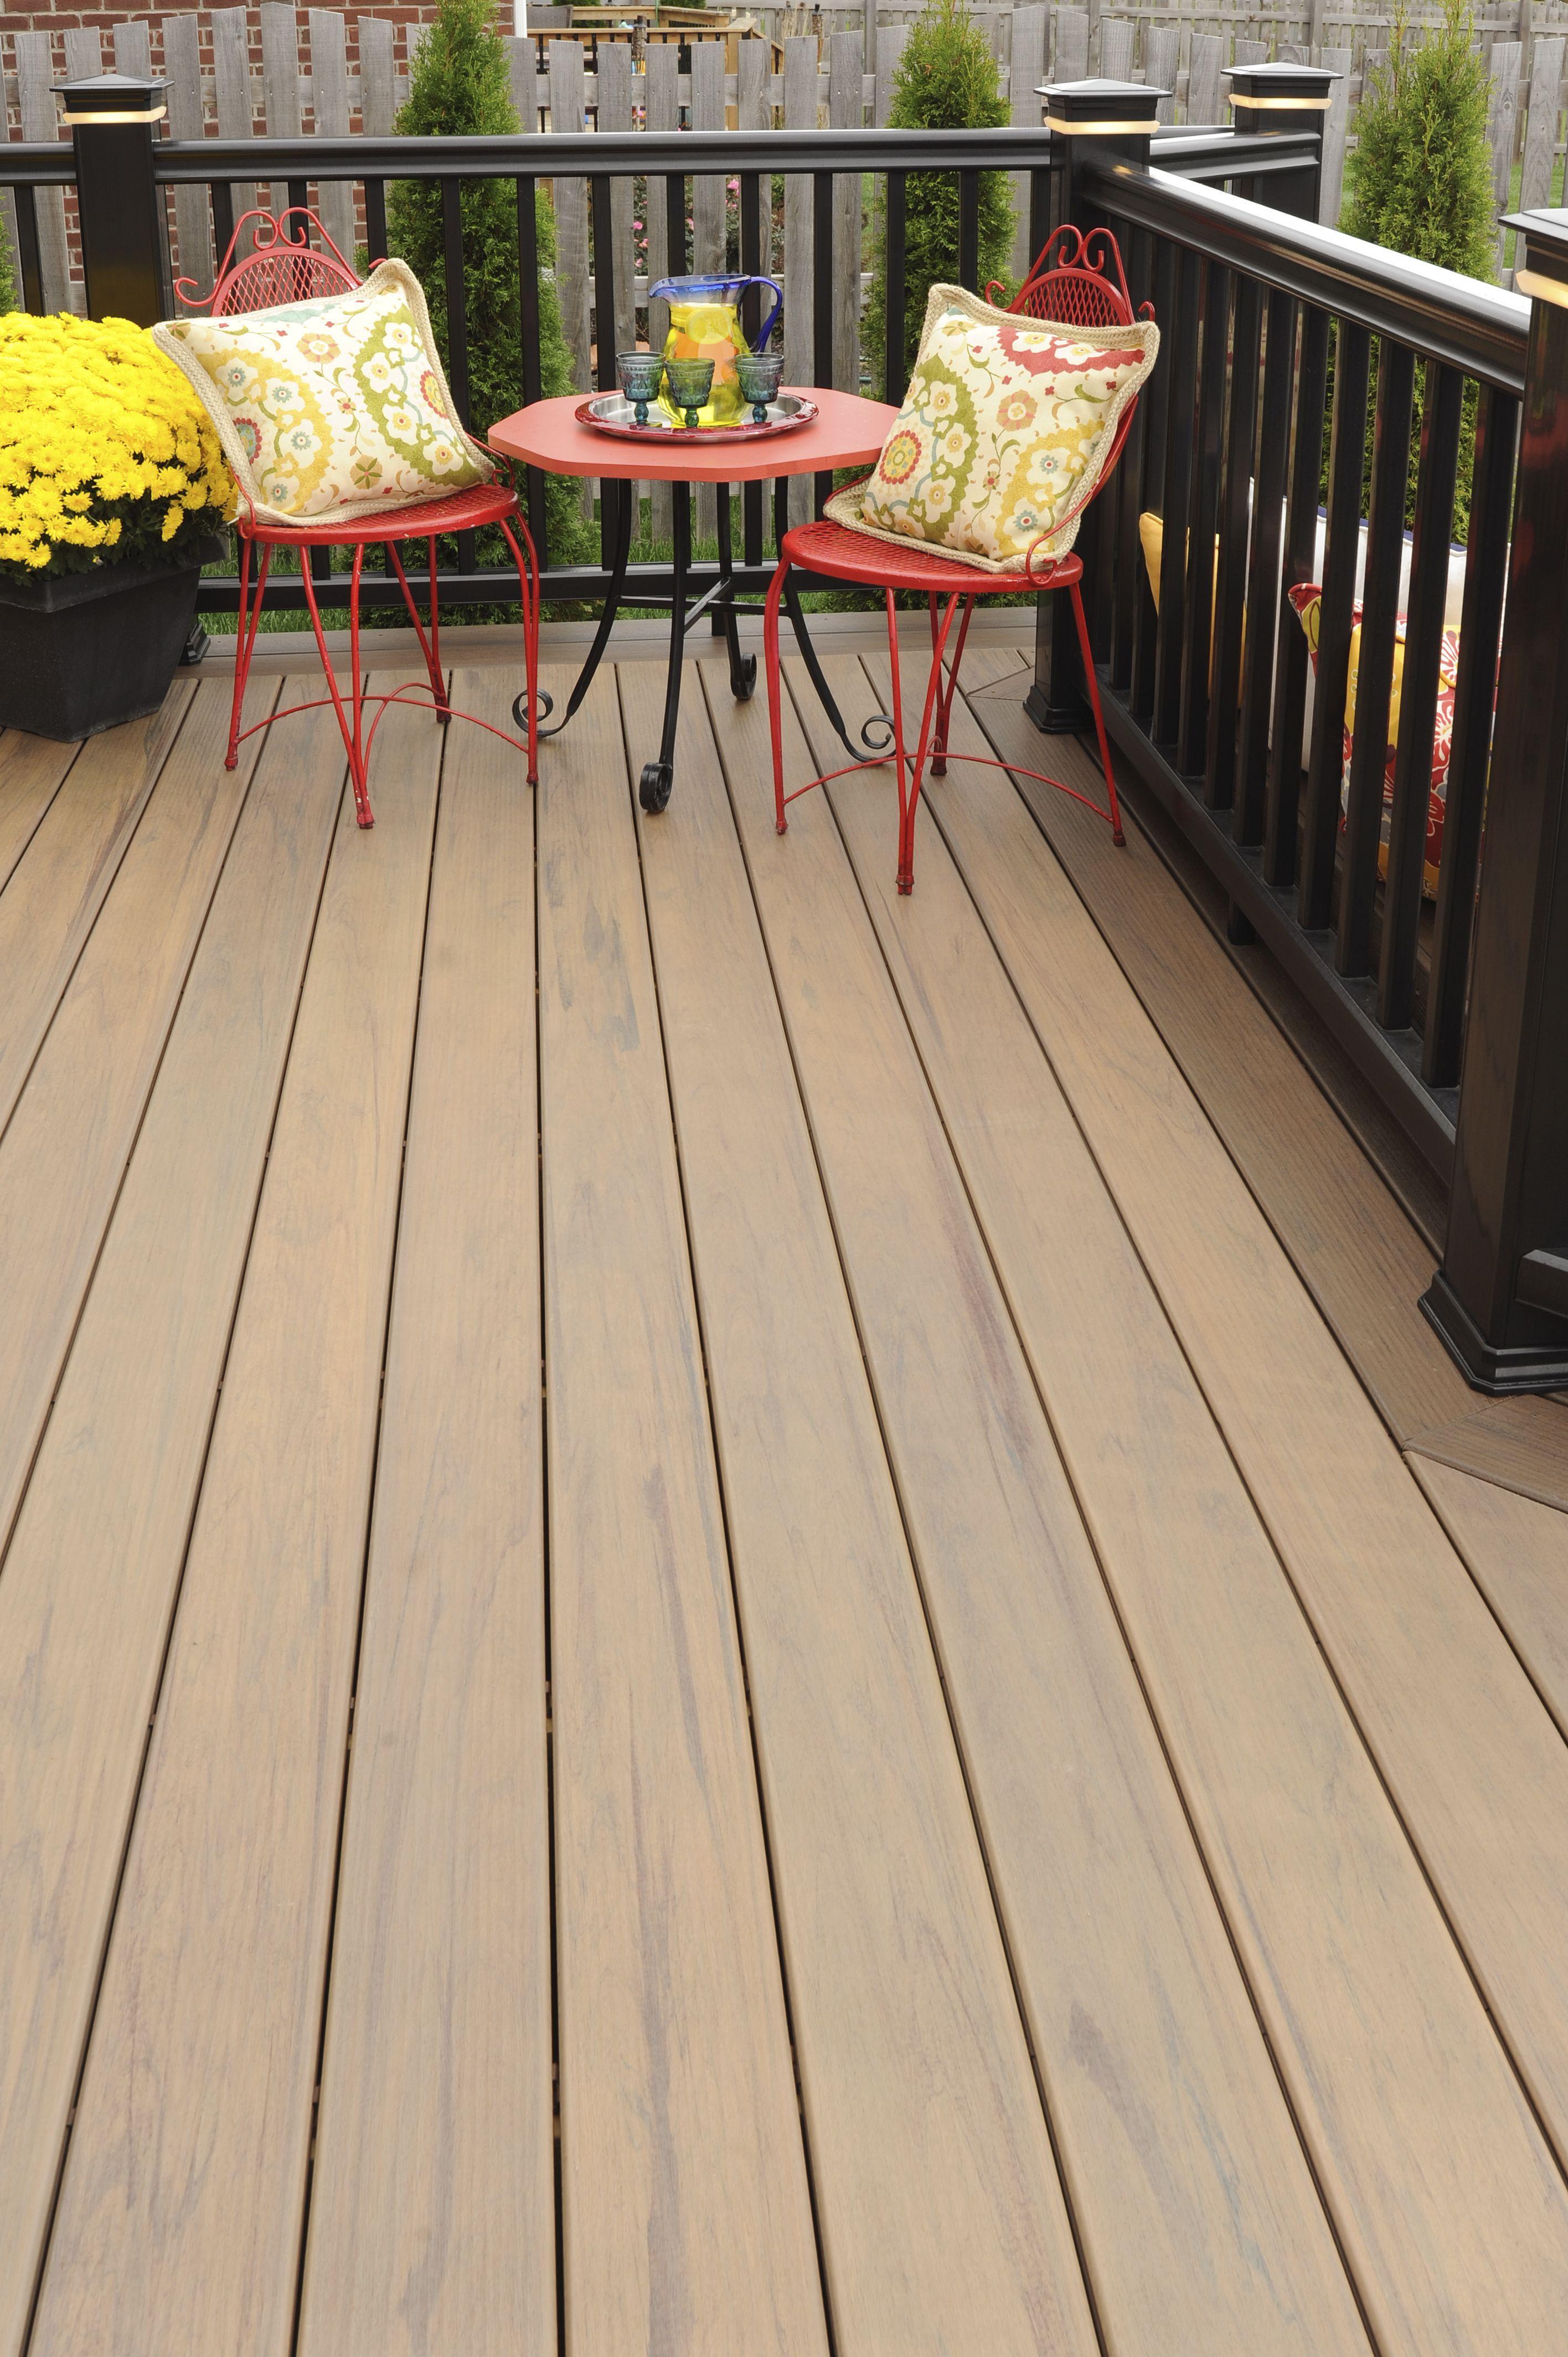 Traditional Americana Styling Paired With Timbertech Tigerwood Decking Patio Design Patio Decking Colours Ideas